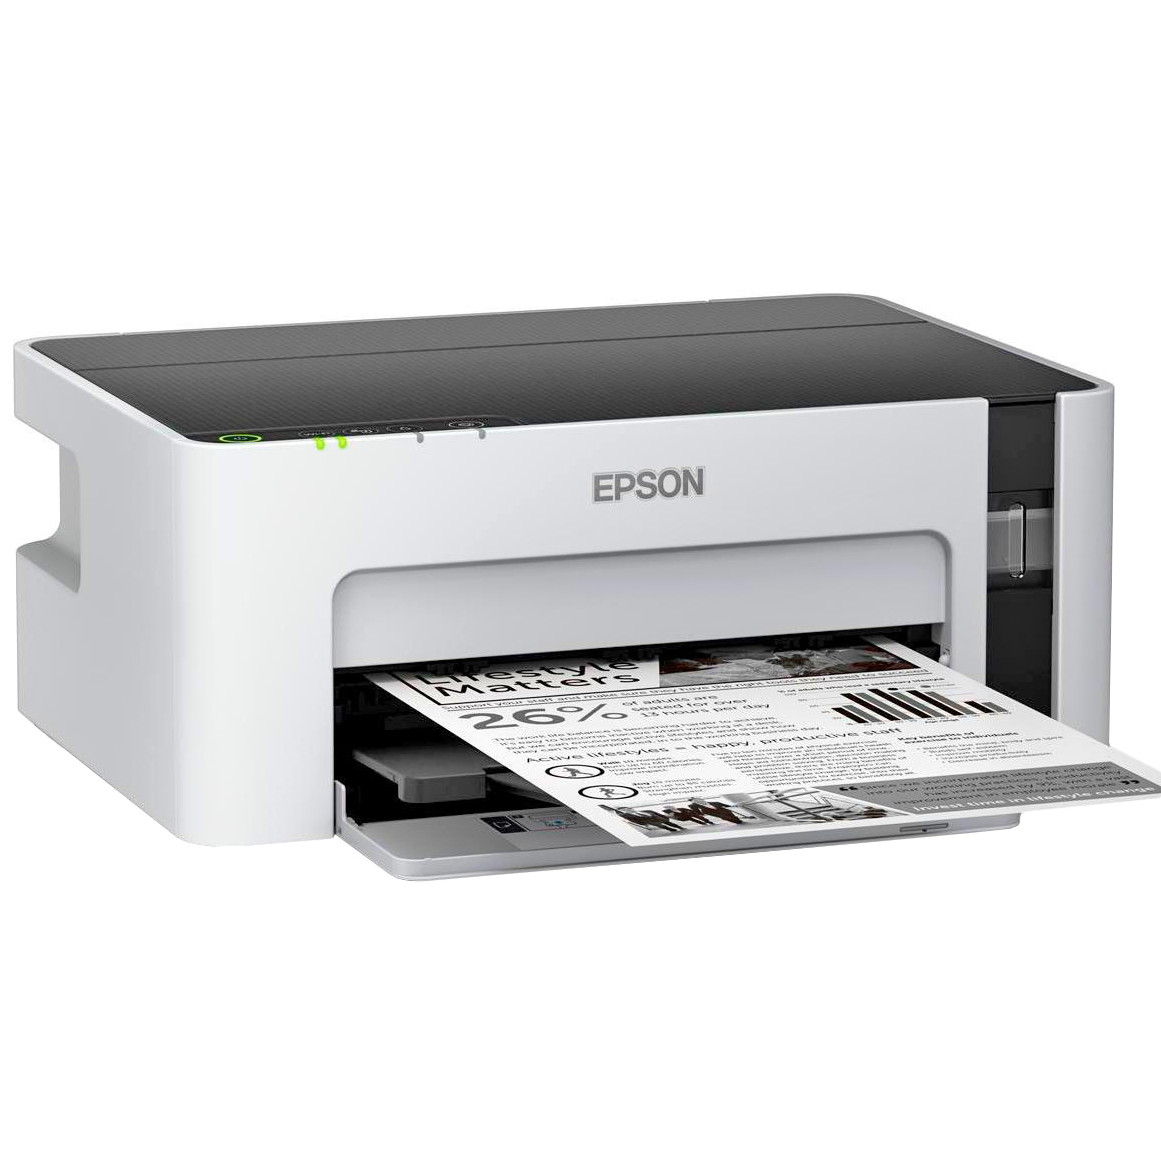 M1120 PRINTER WINDOWS XP DRIVER DOWNLOAD